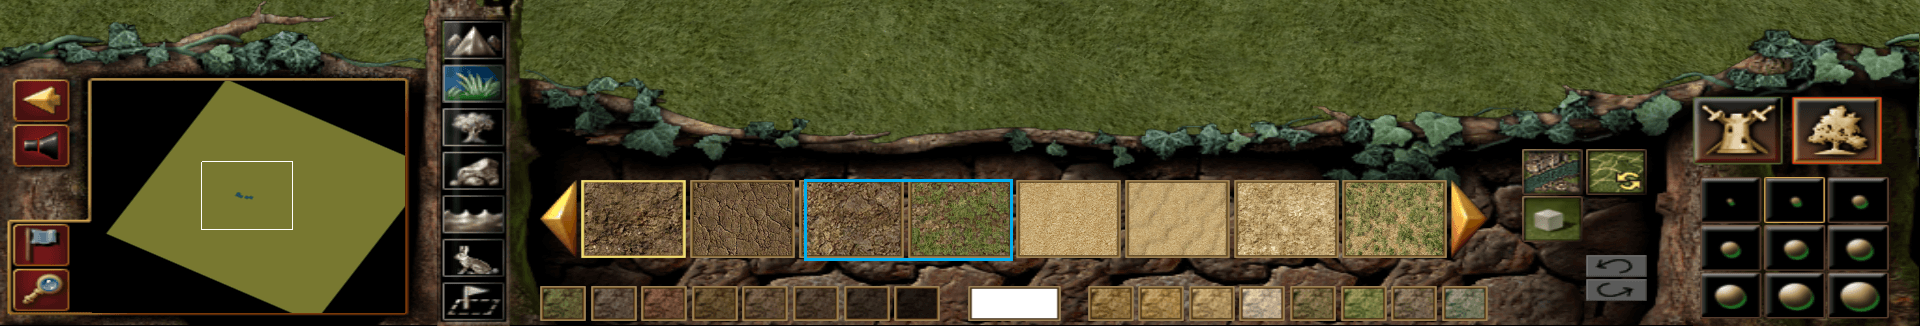 A map editor tutorial stronghold 2 tutorials strongholdnation once more left to right gumiabroncs Choice Image